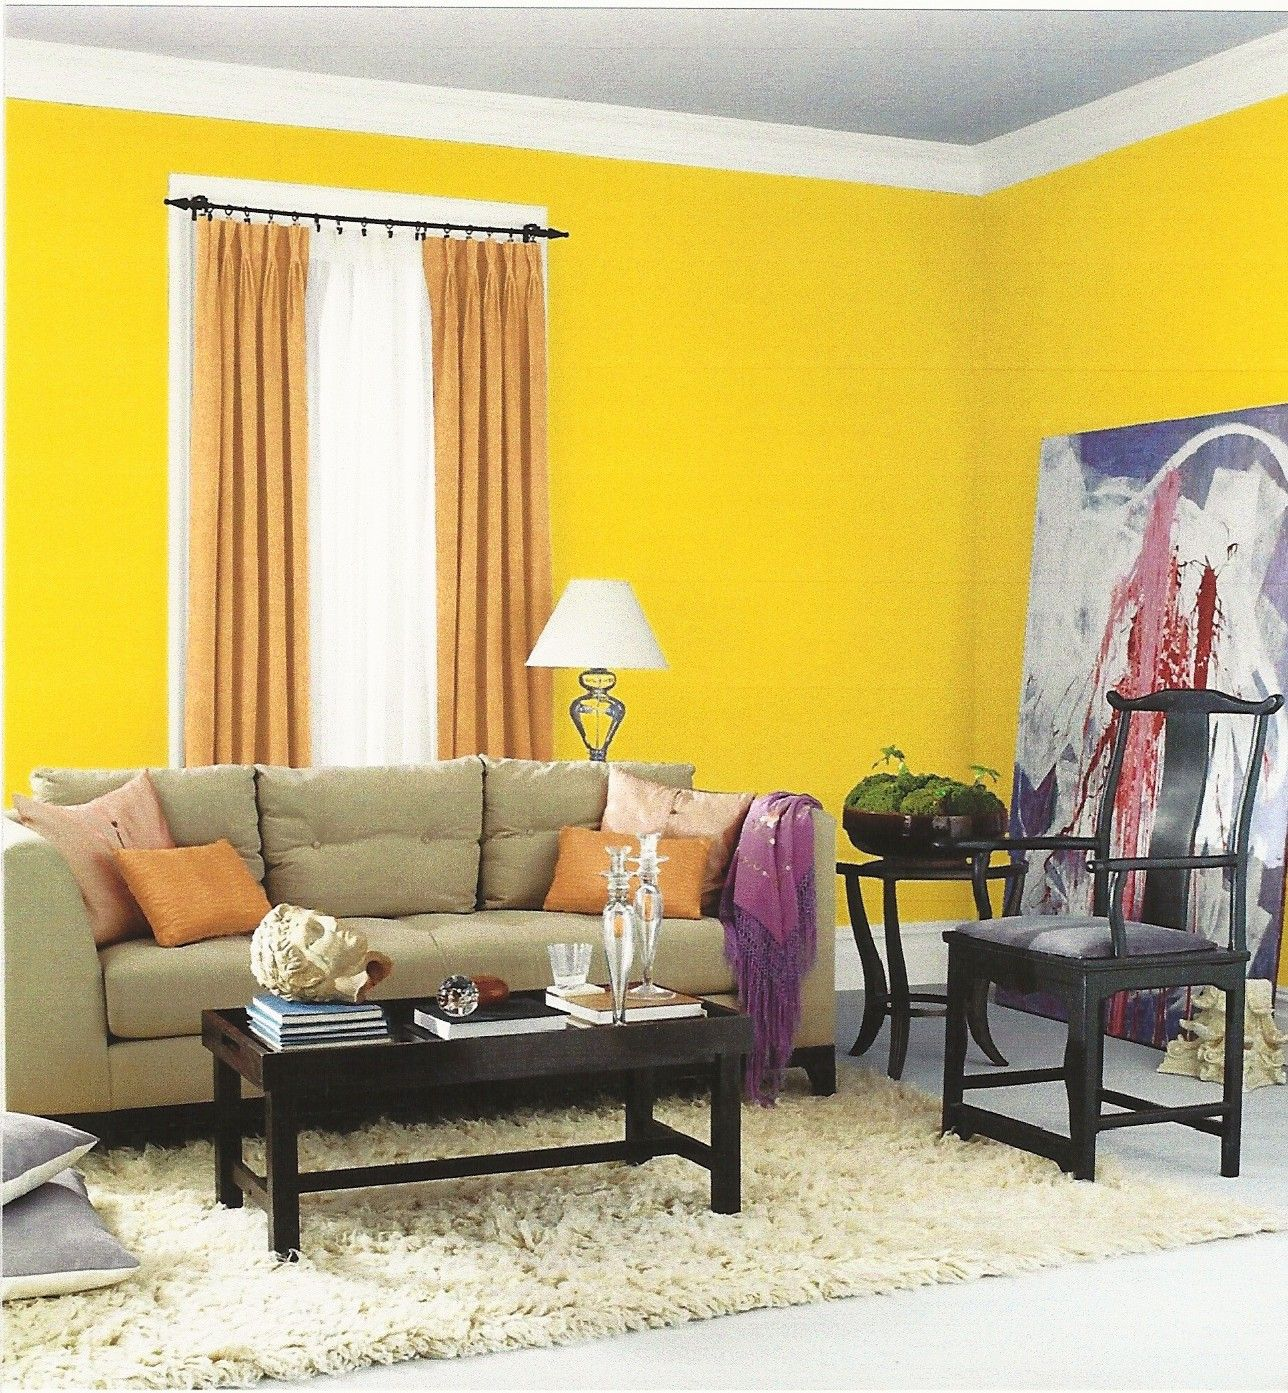 The beginners guide to color psychology for interior design warm living roomsorange